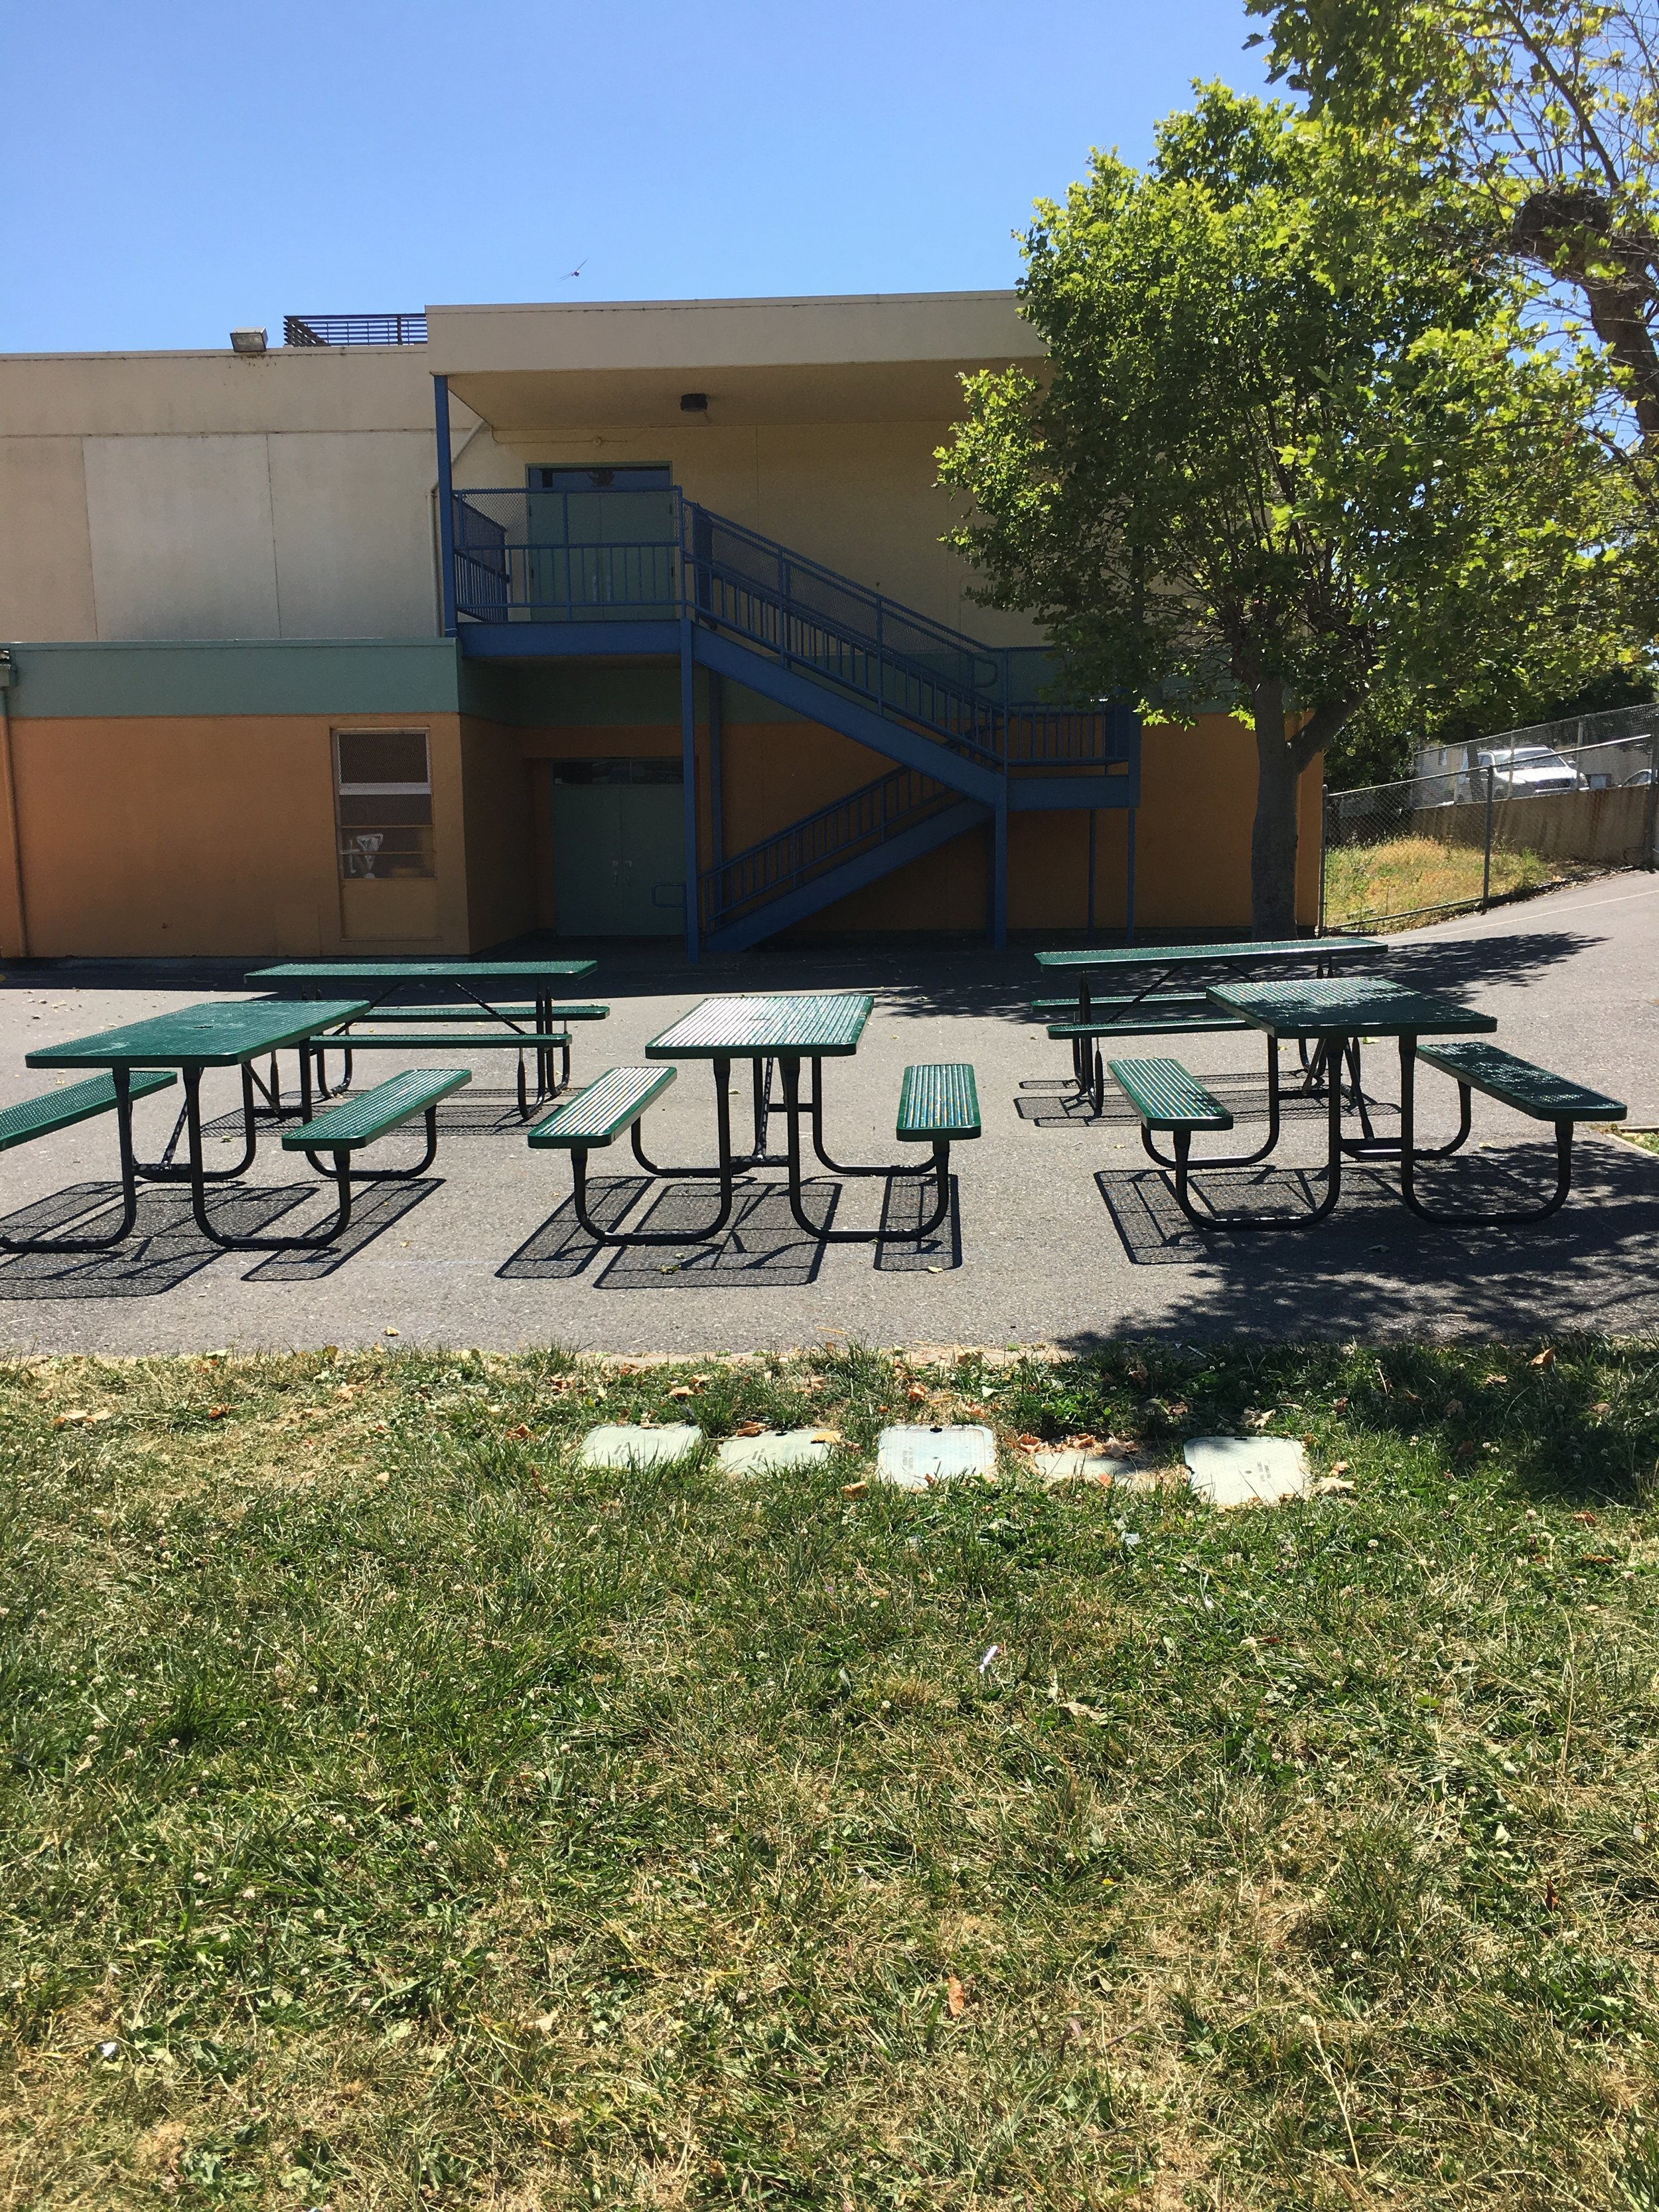 tables in upper yard view to classroom bldg.JPG